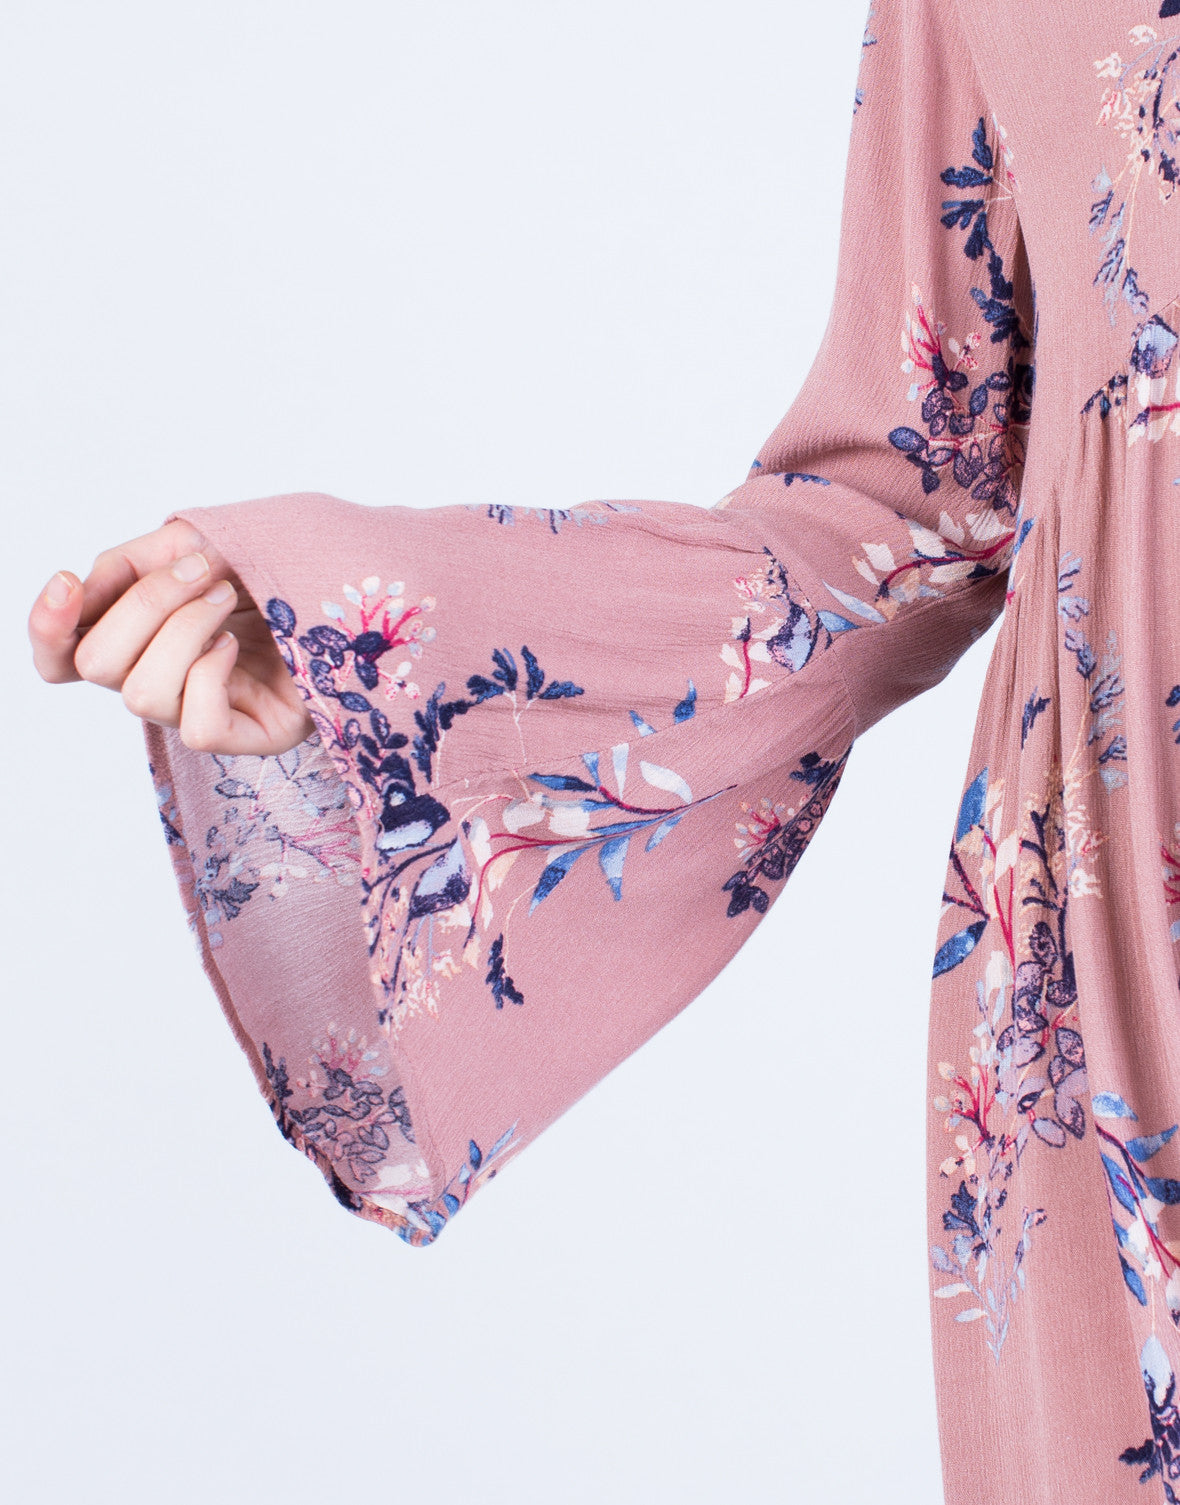 Detail of Blooming Floral Dress